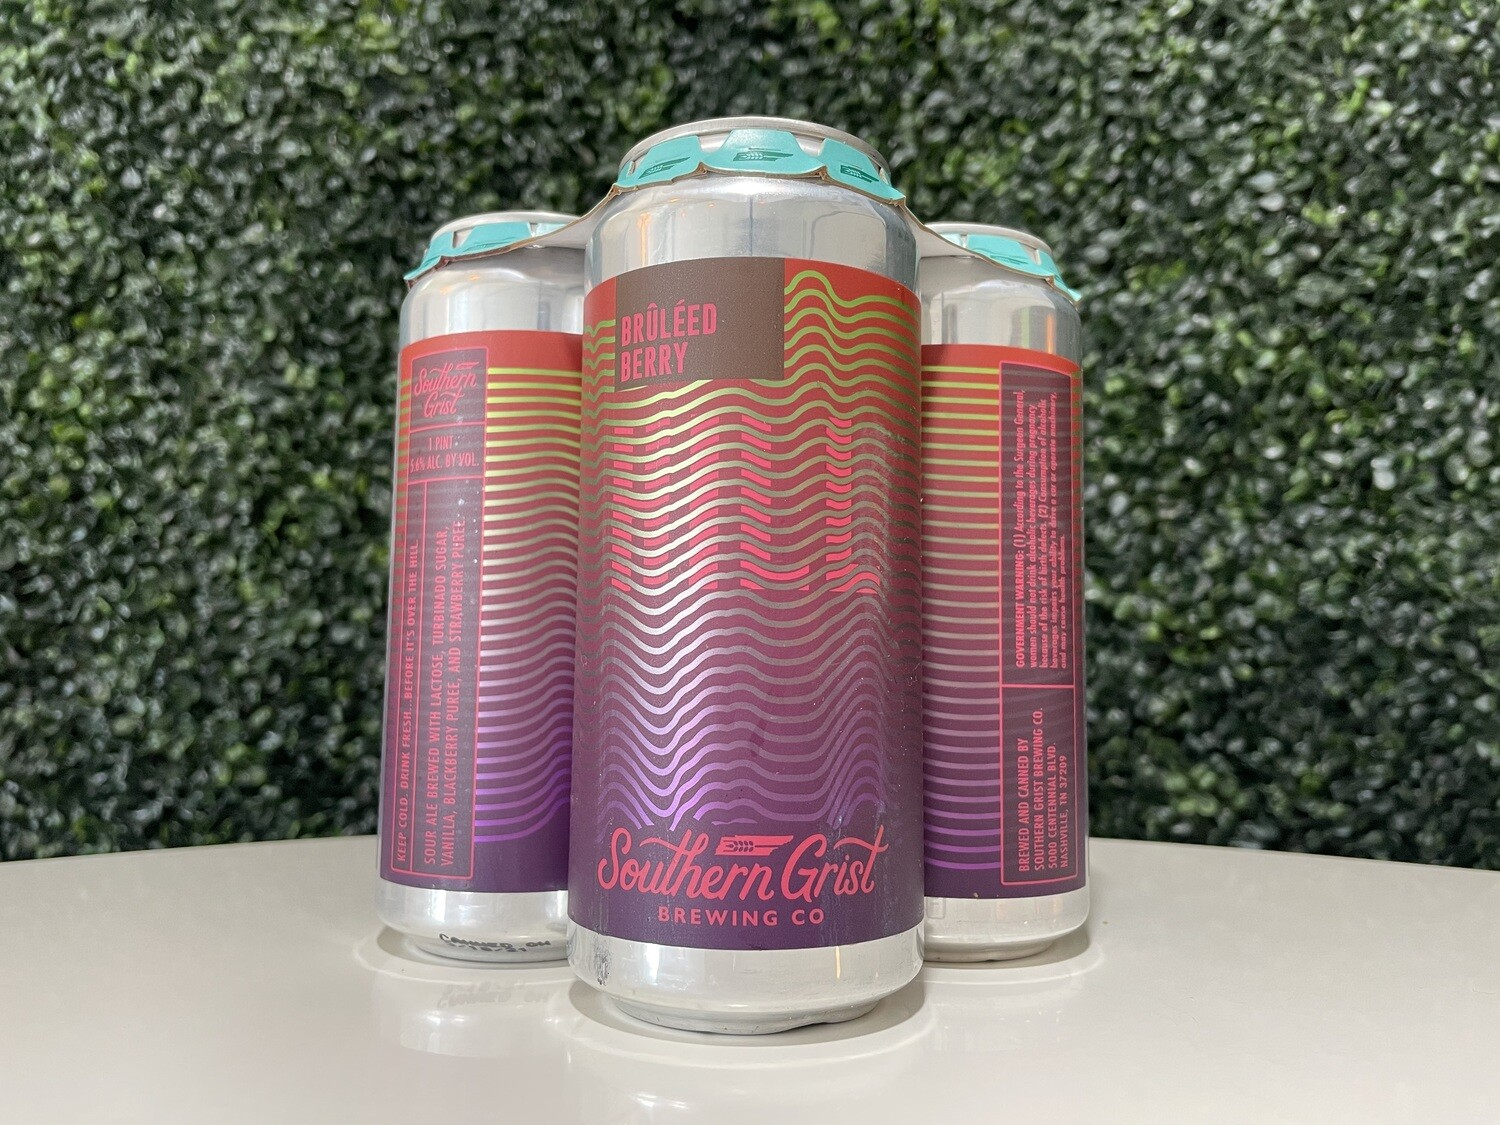 Southern Grist - Bruleed Berry Hill - Fruited Sour - 5.6% ABV - 16oz Can